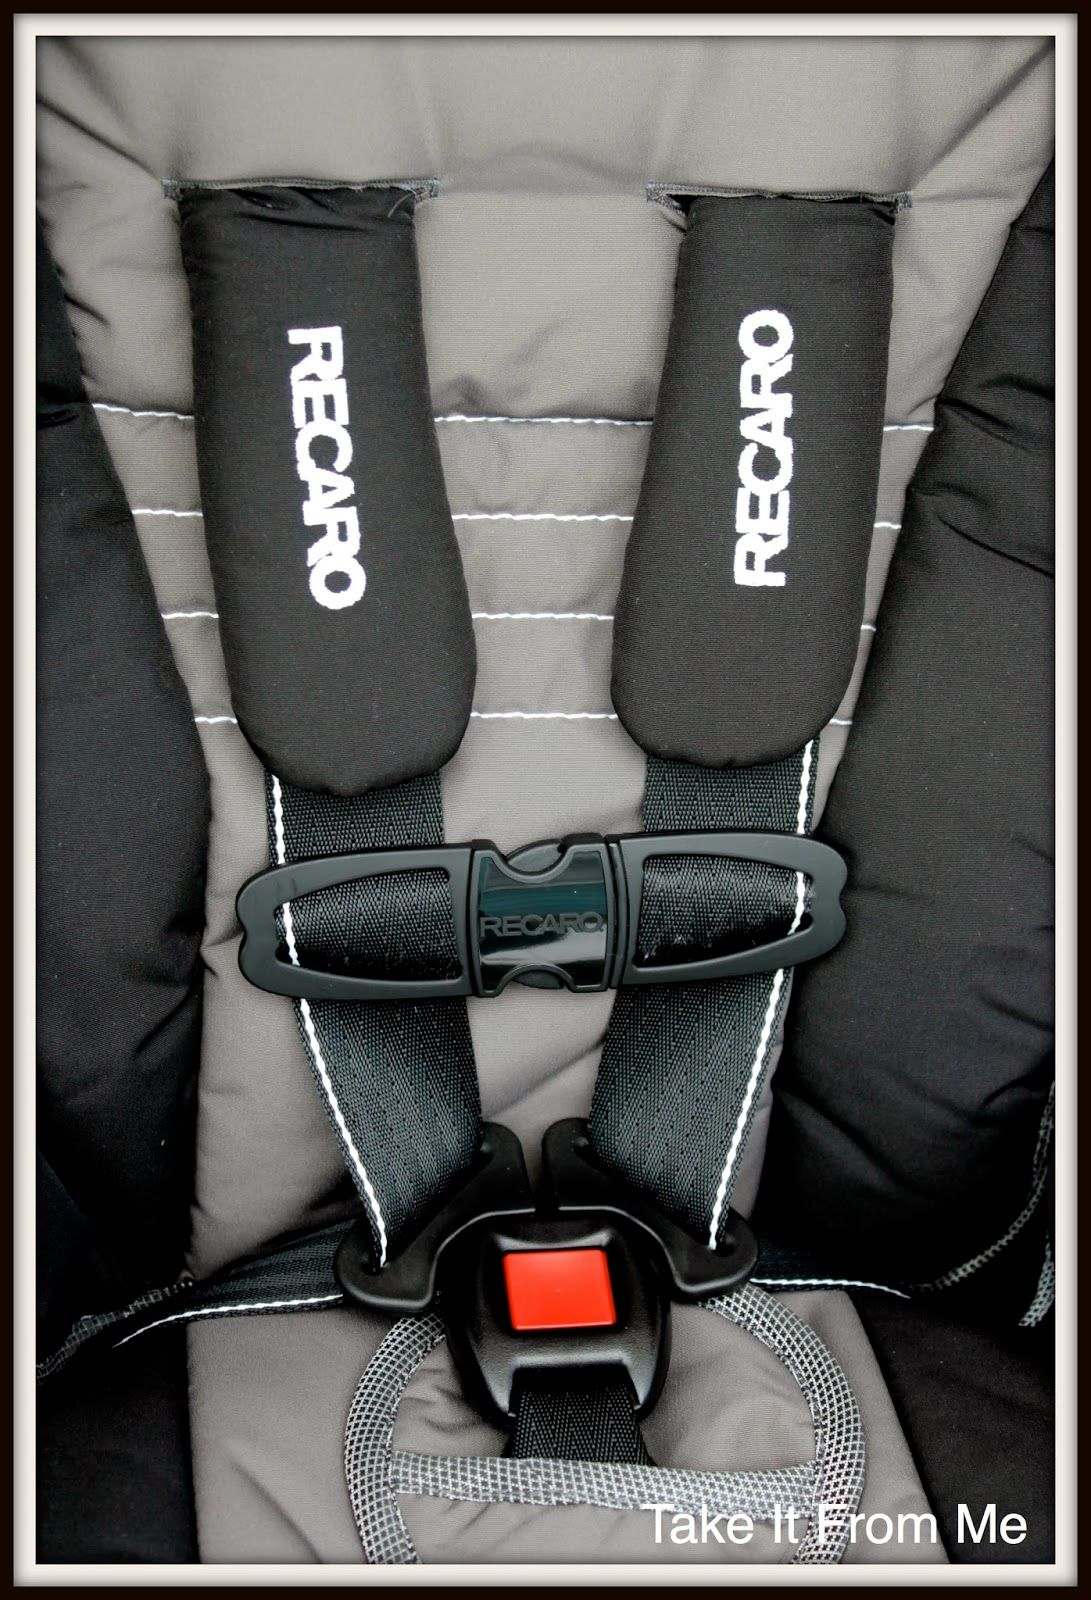 Take It From Me RECARO Car Seat Review Giveaway